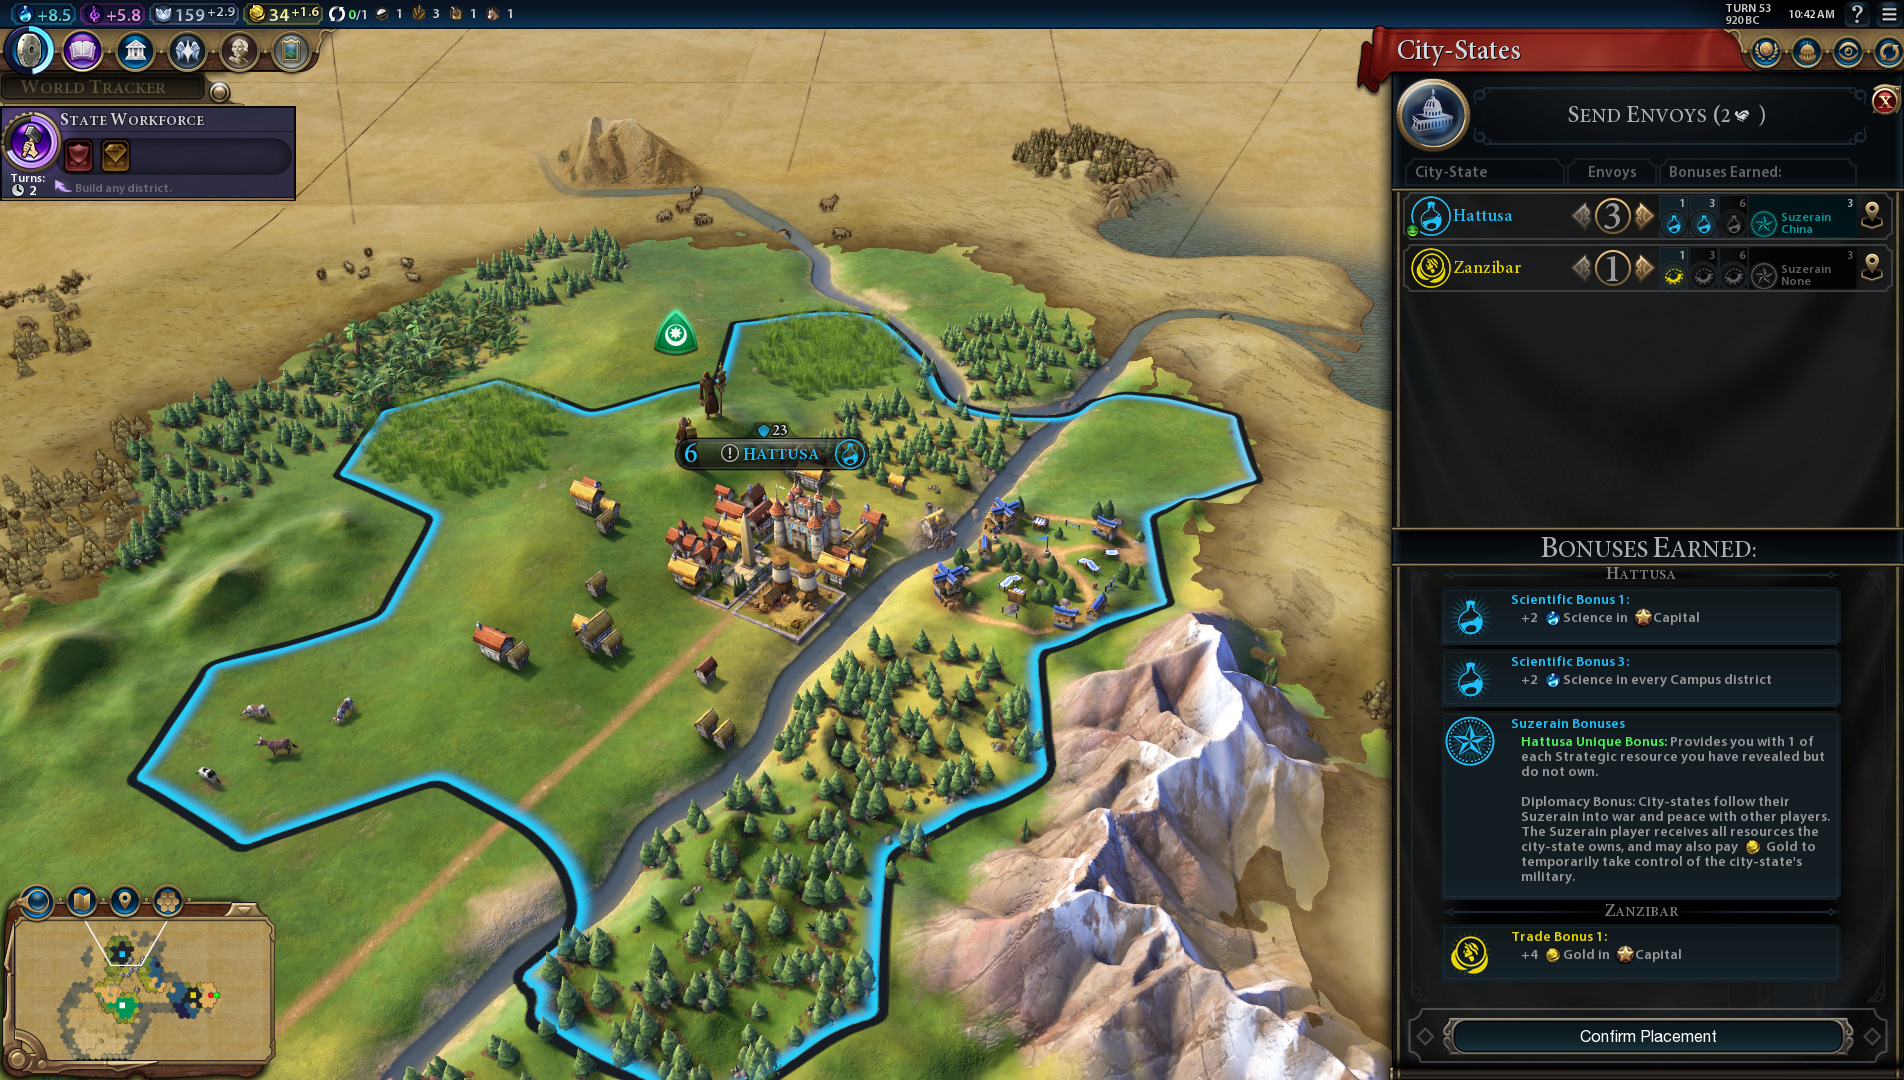 CivilizationVI_screenshot_city-state_hat